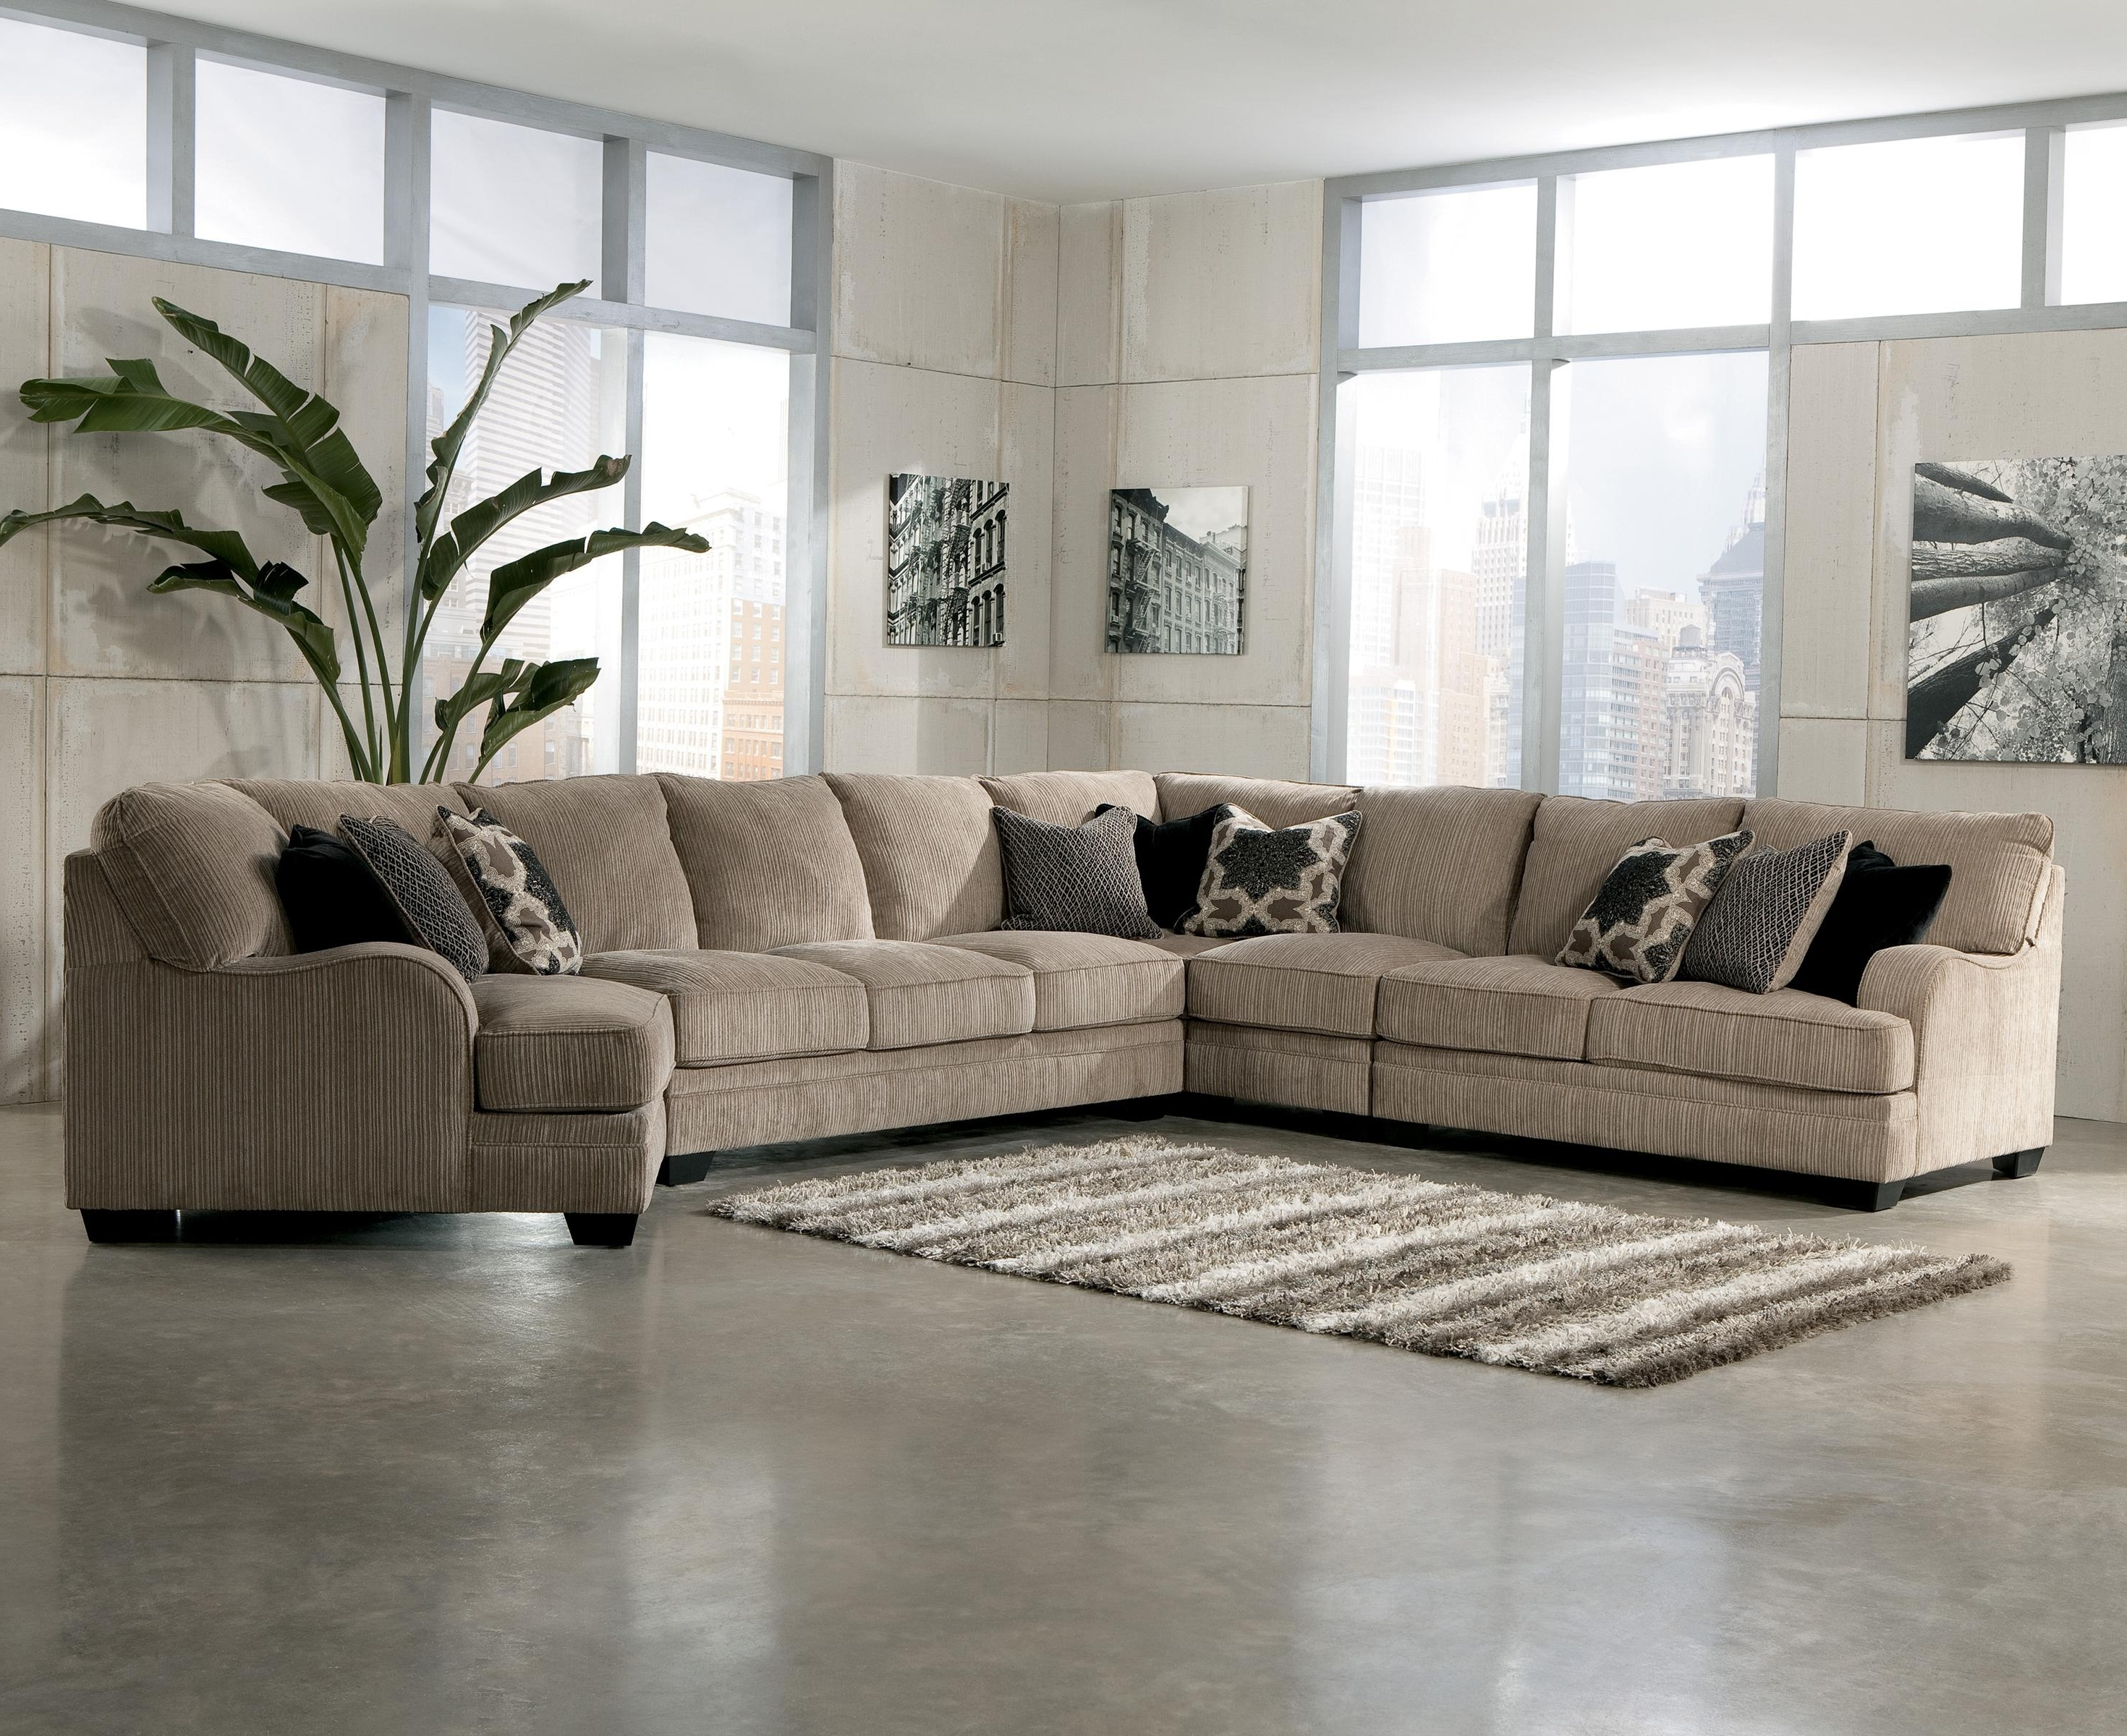 Widely Used Signature Designashley Katisha – Platinum 5 Piece Sectional Inside Pittsburgh Sectional Sofas (View 15 of 15)